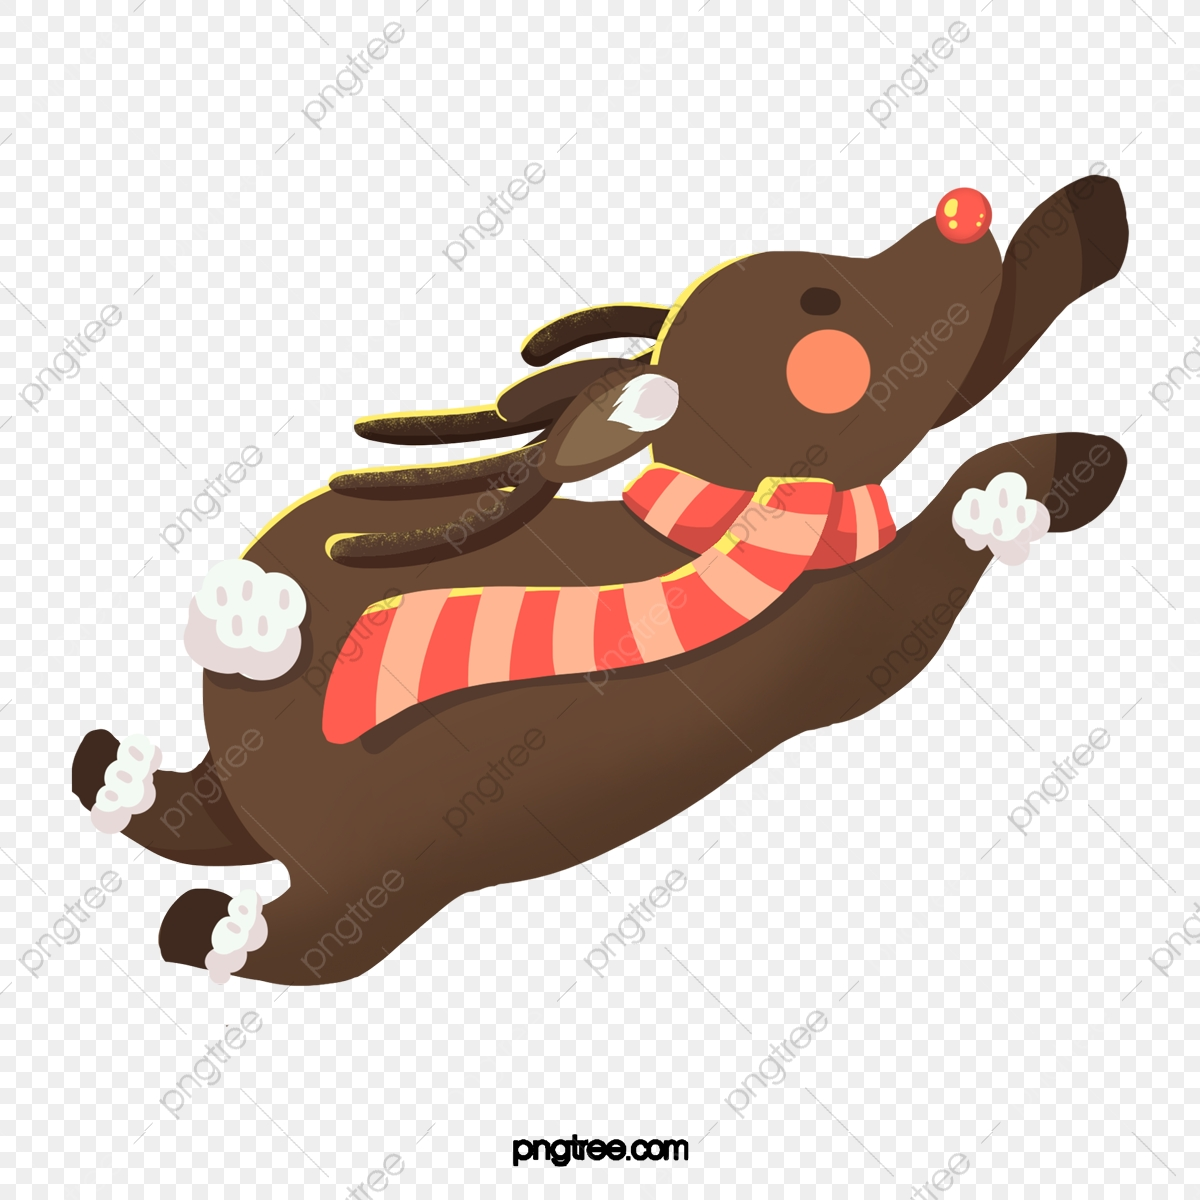 Christmas Reindeer Clipart Vector Images (over 990)